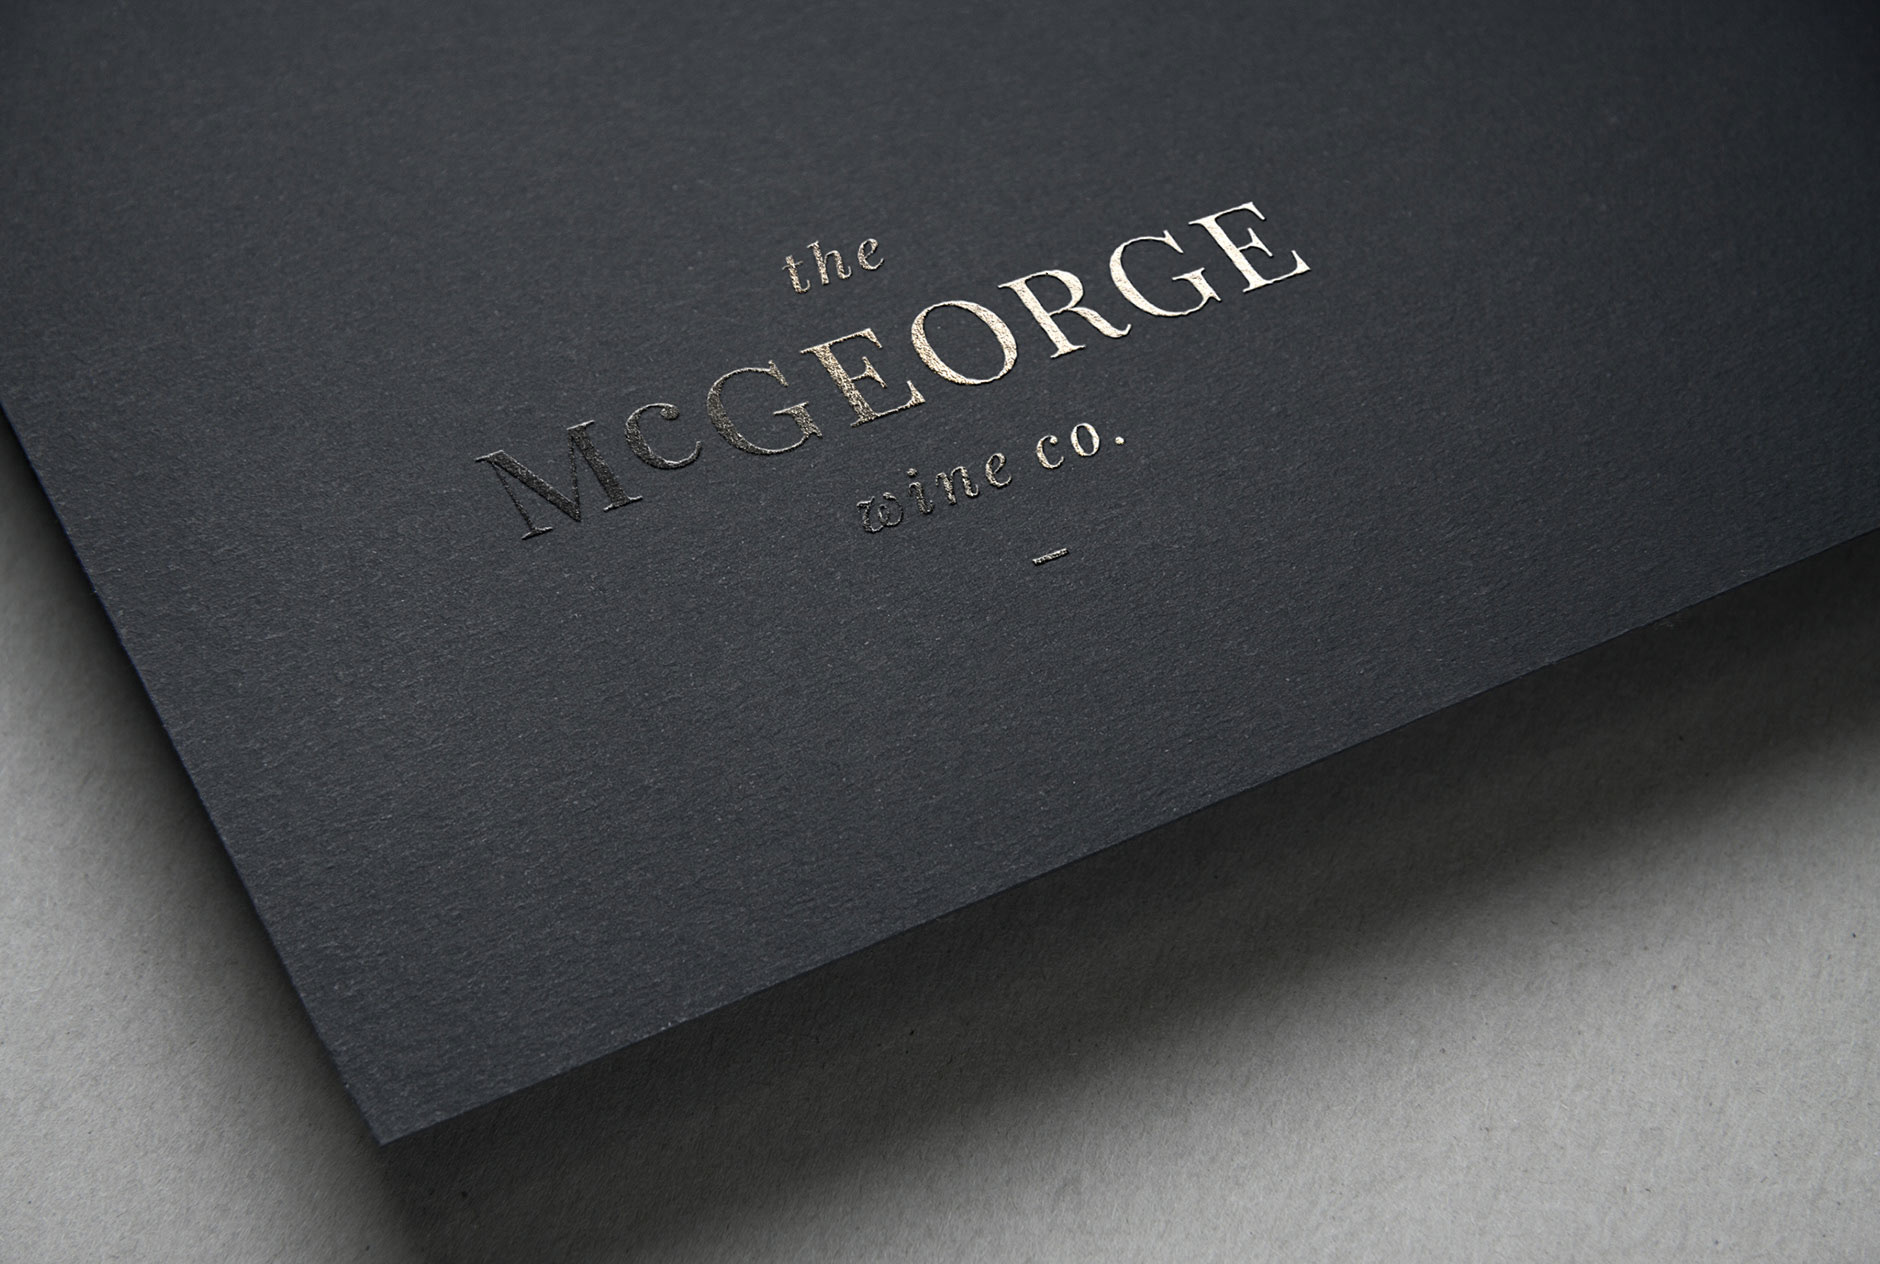 The McGeorge Wine co. logo